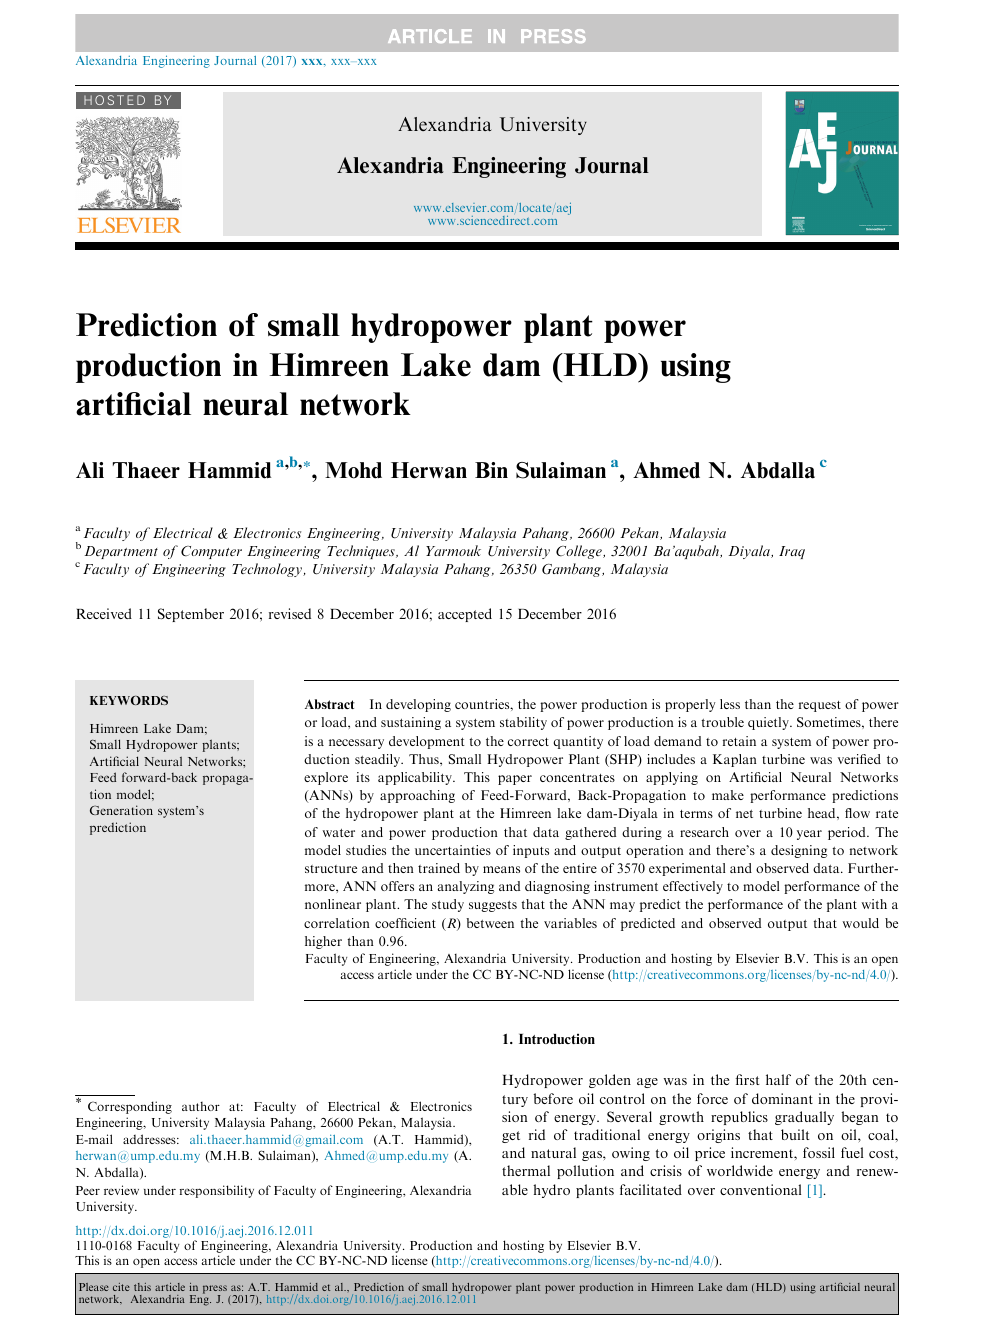 Prediction of small hydropower plant power production in Himreen